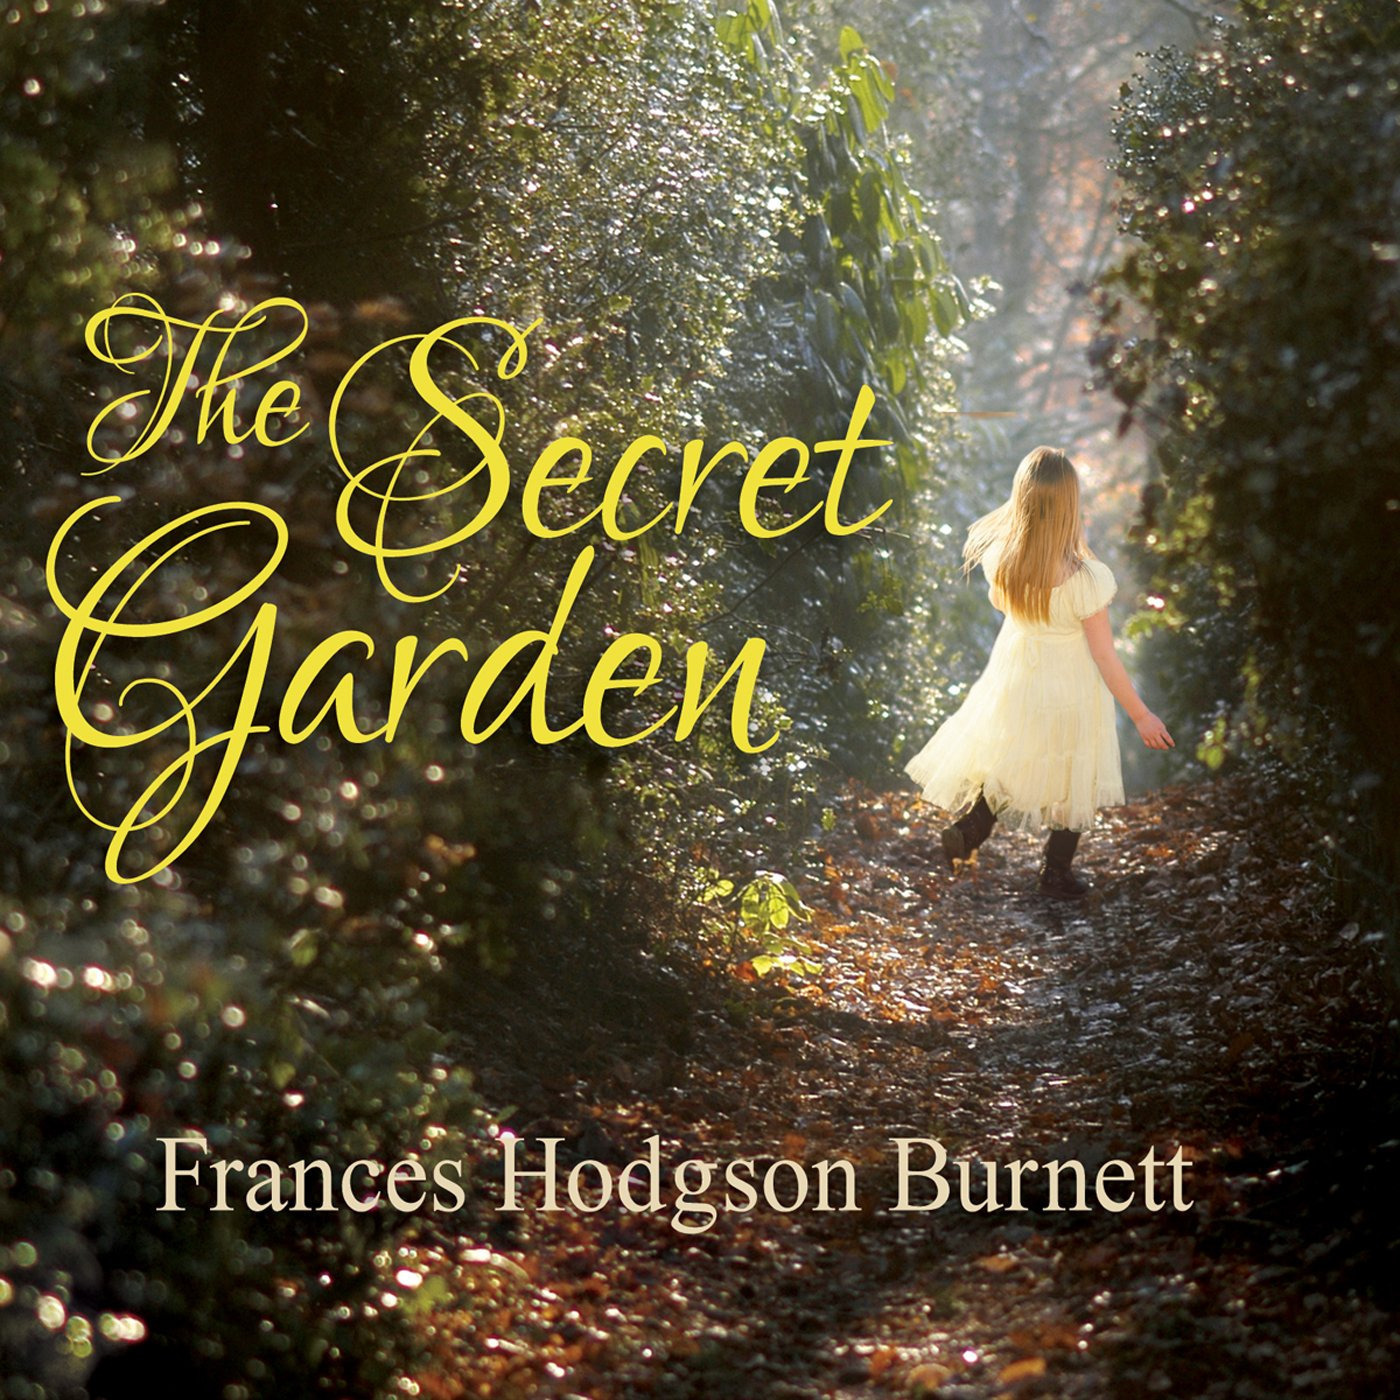 Perfect The Secret Garden Audiobook, By Frances Hodgson Burnett Ideas